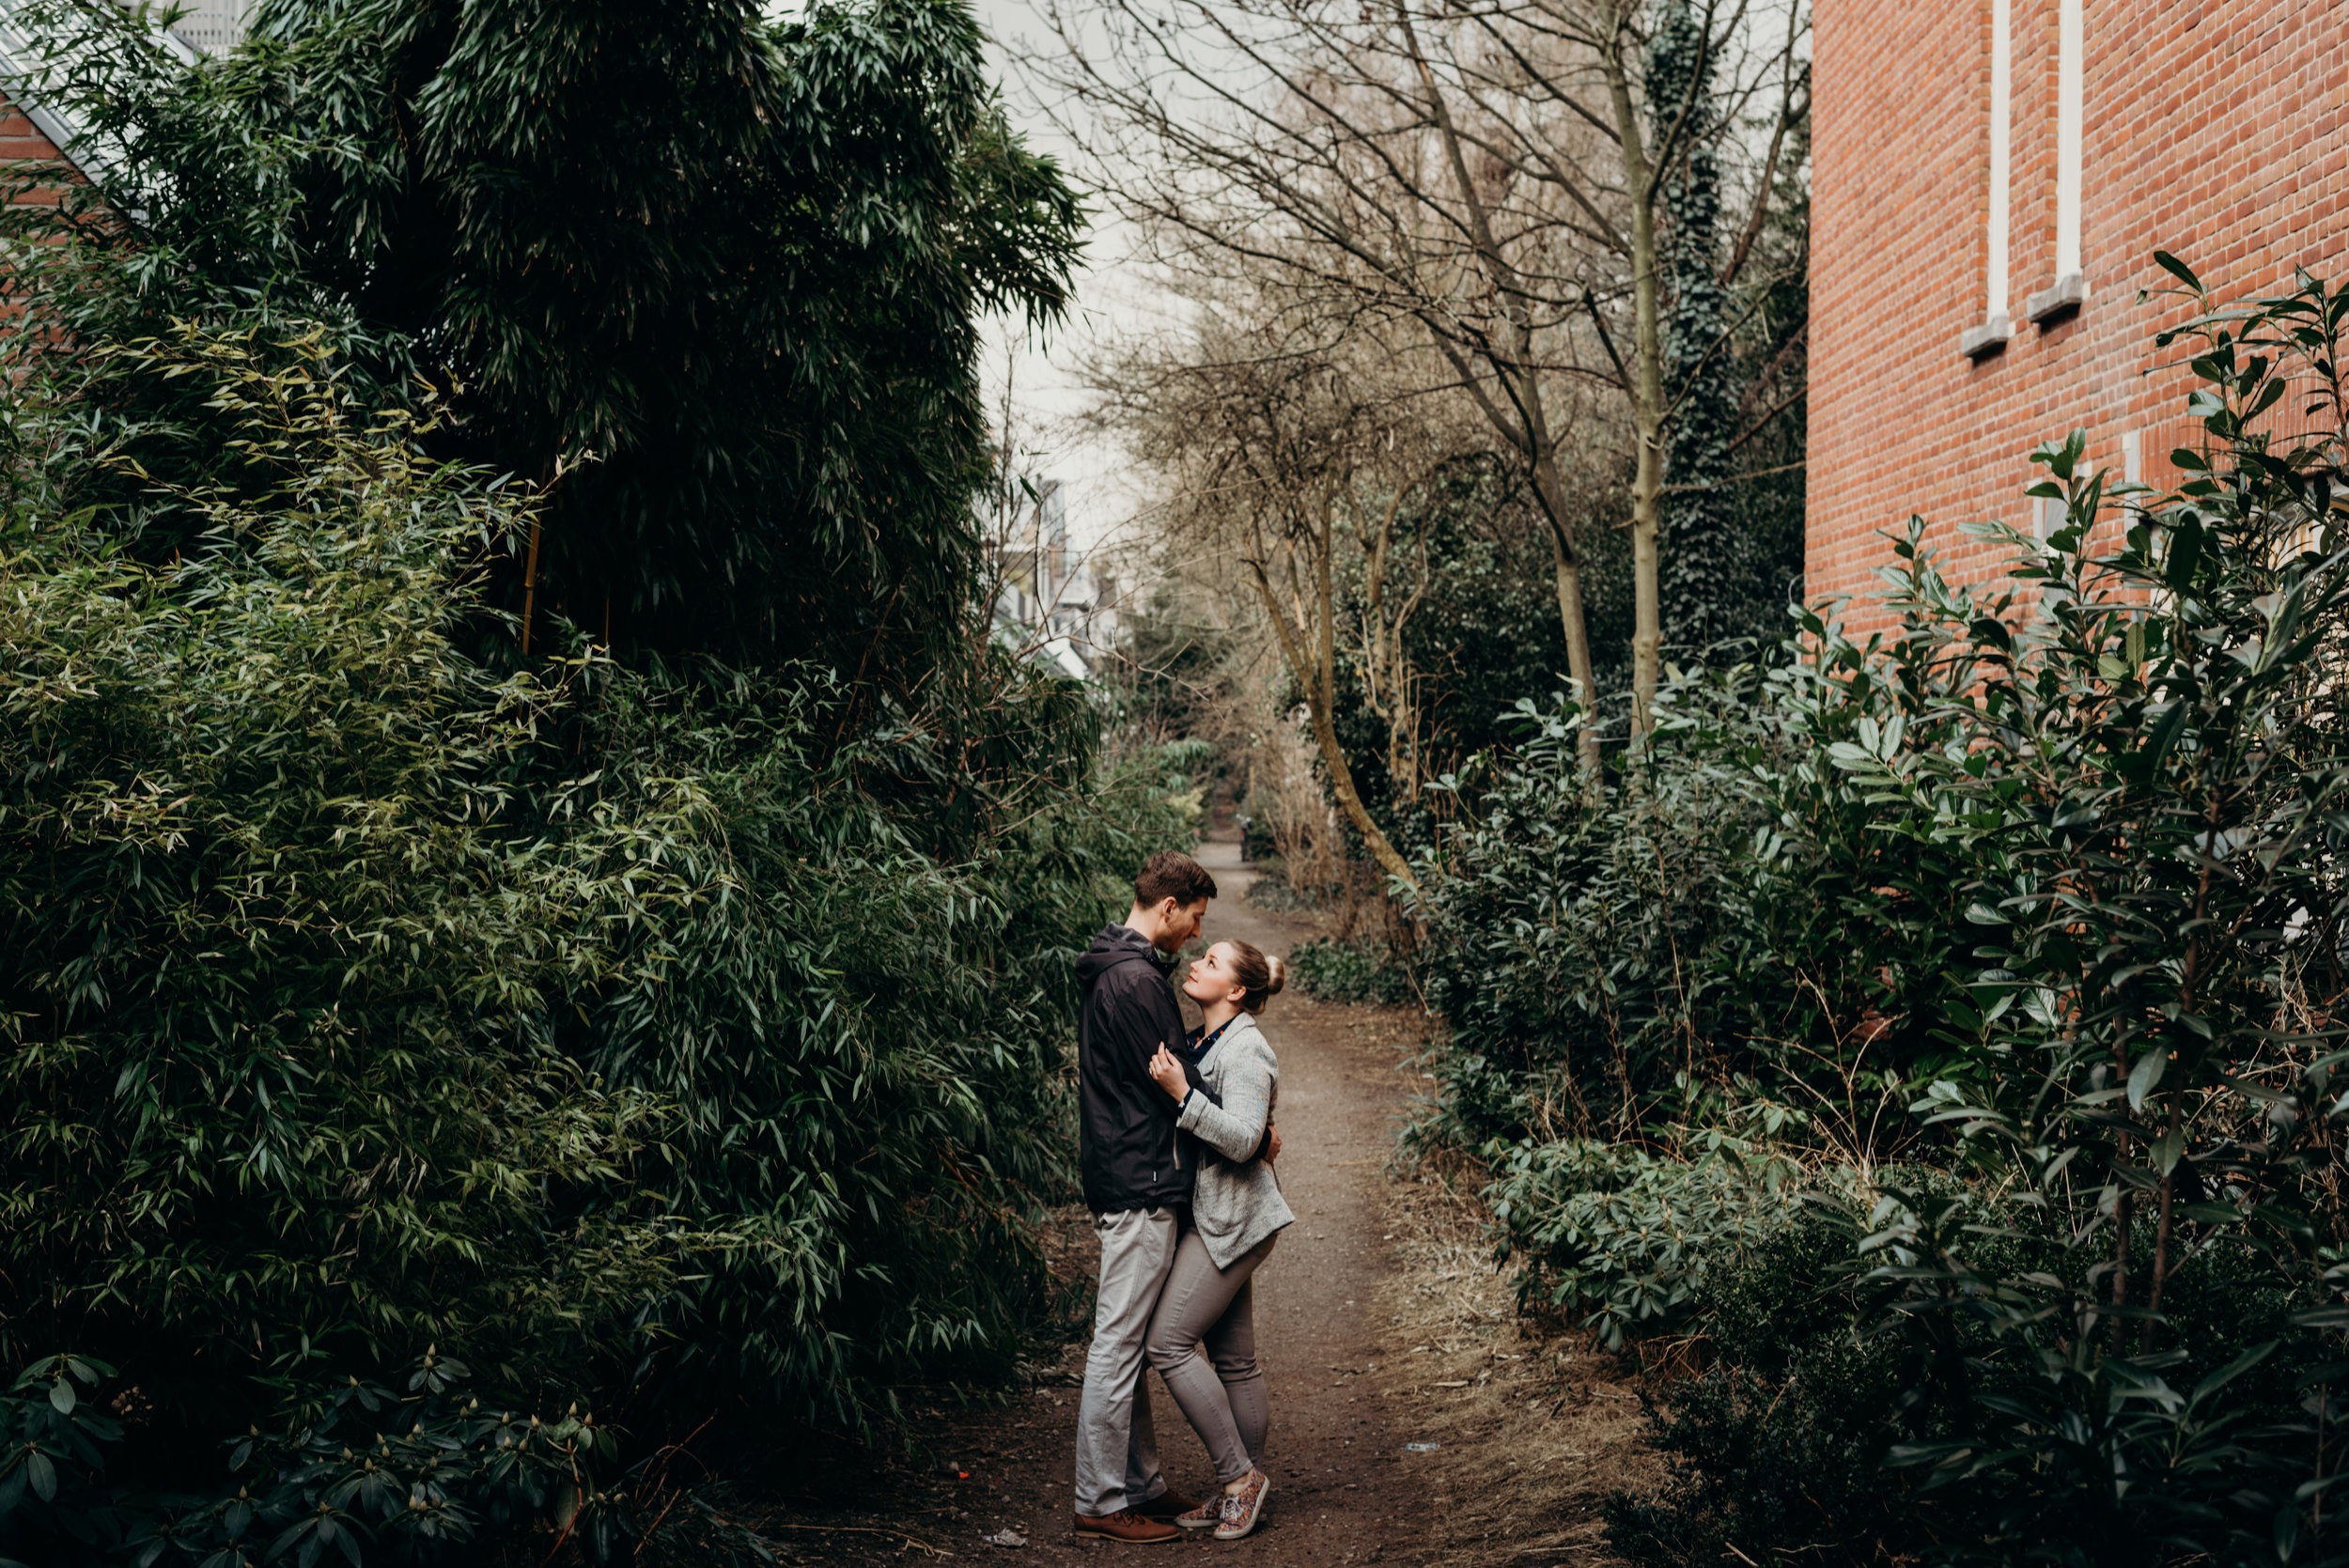 married couple embrace on a path surrounded by trees in Amsterdam